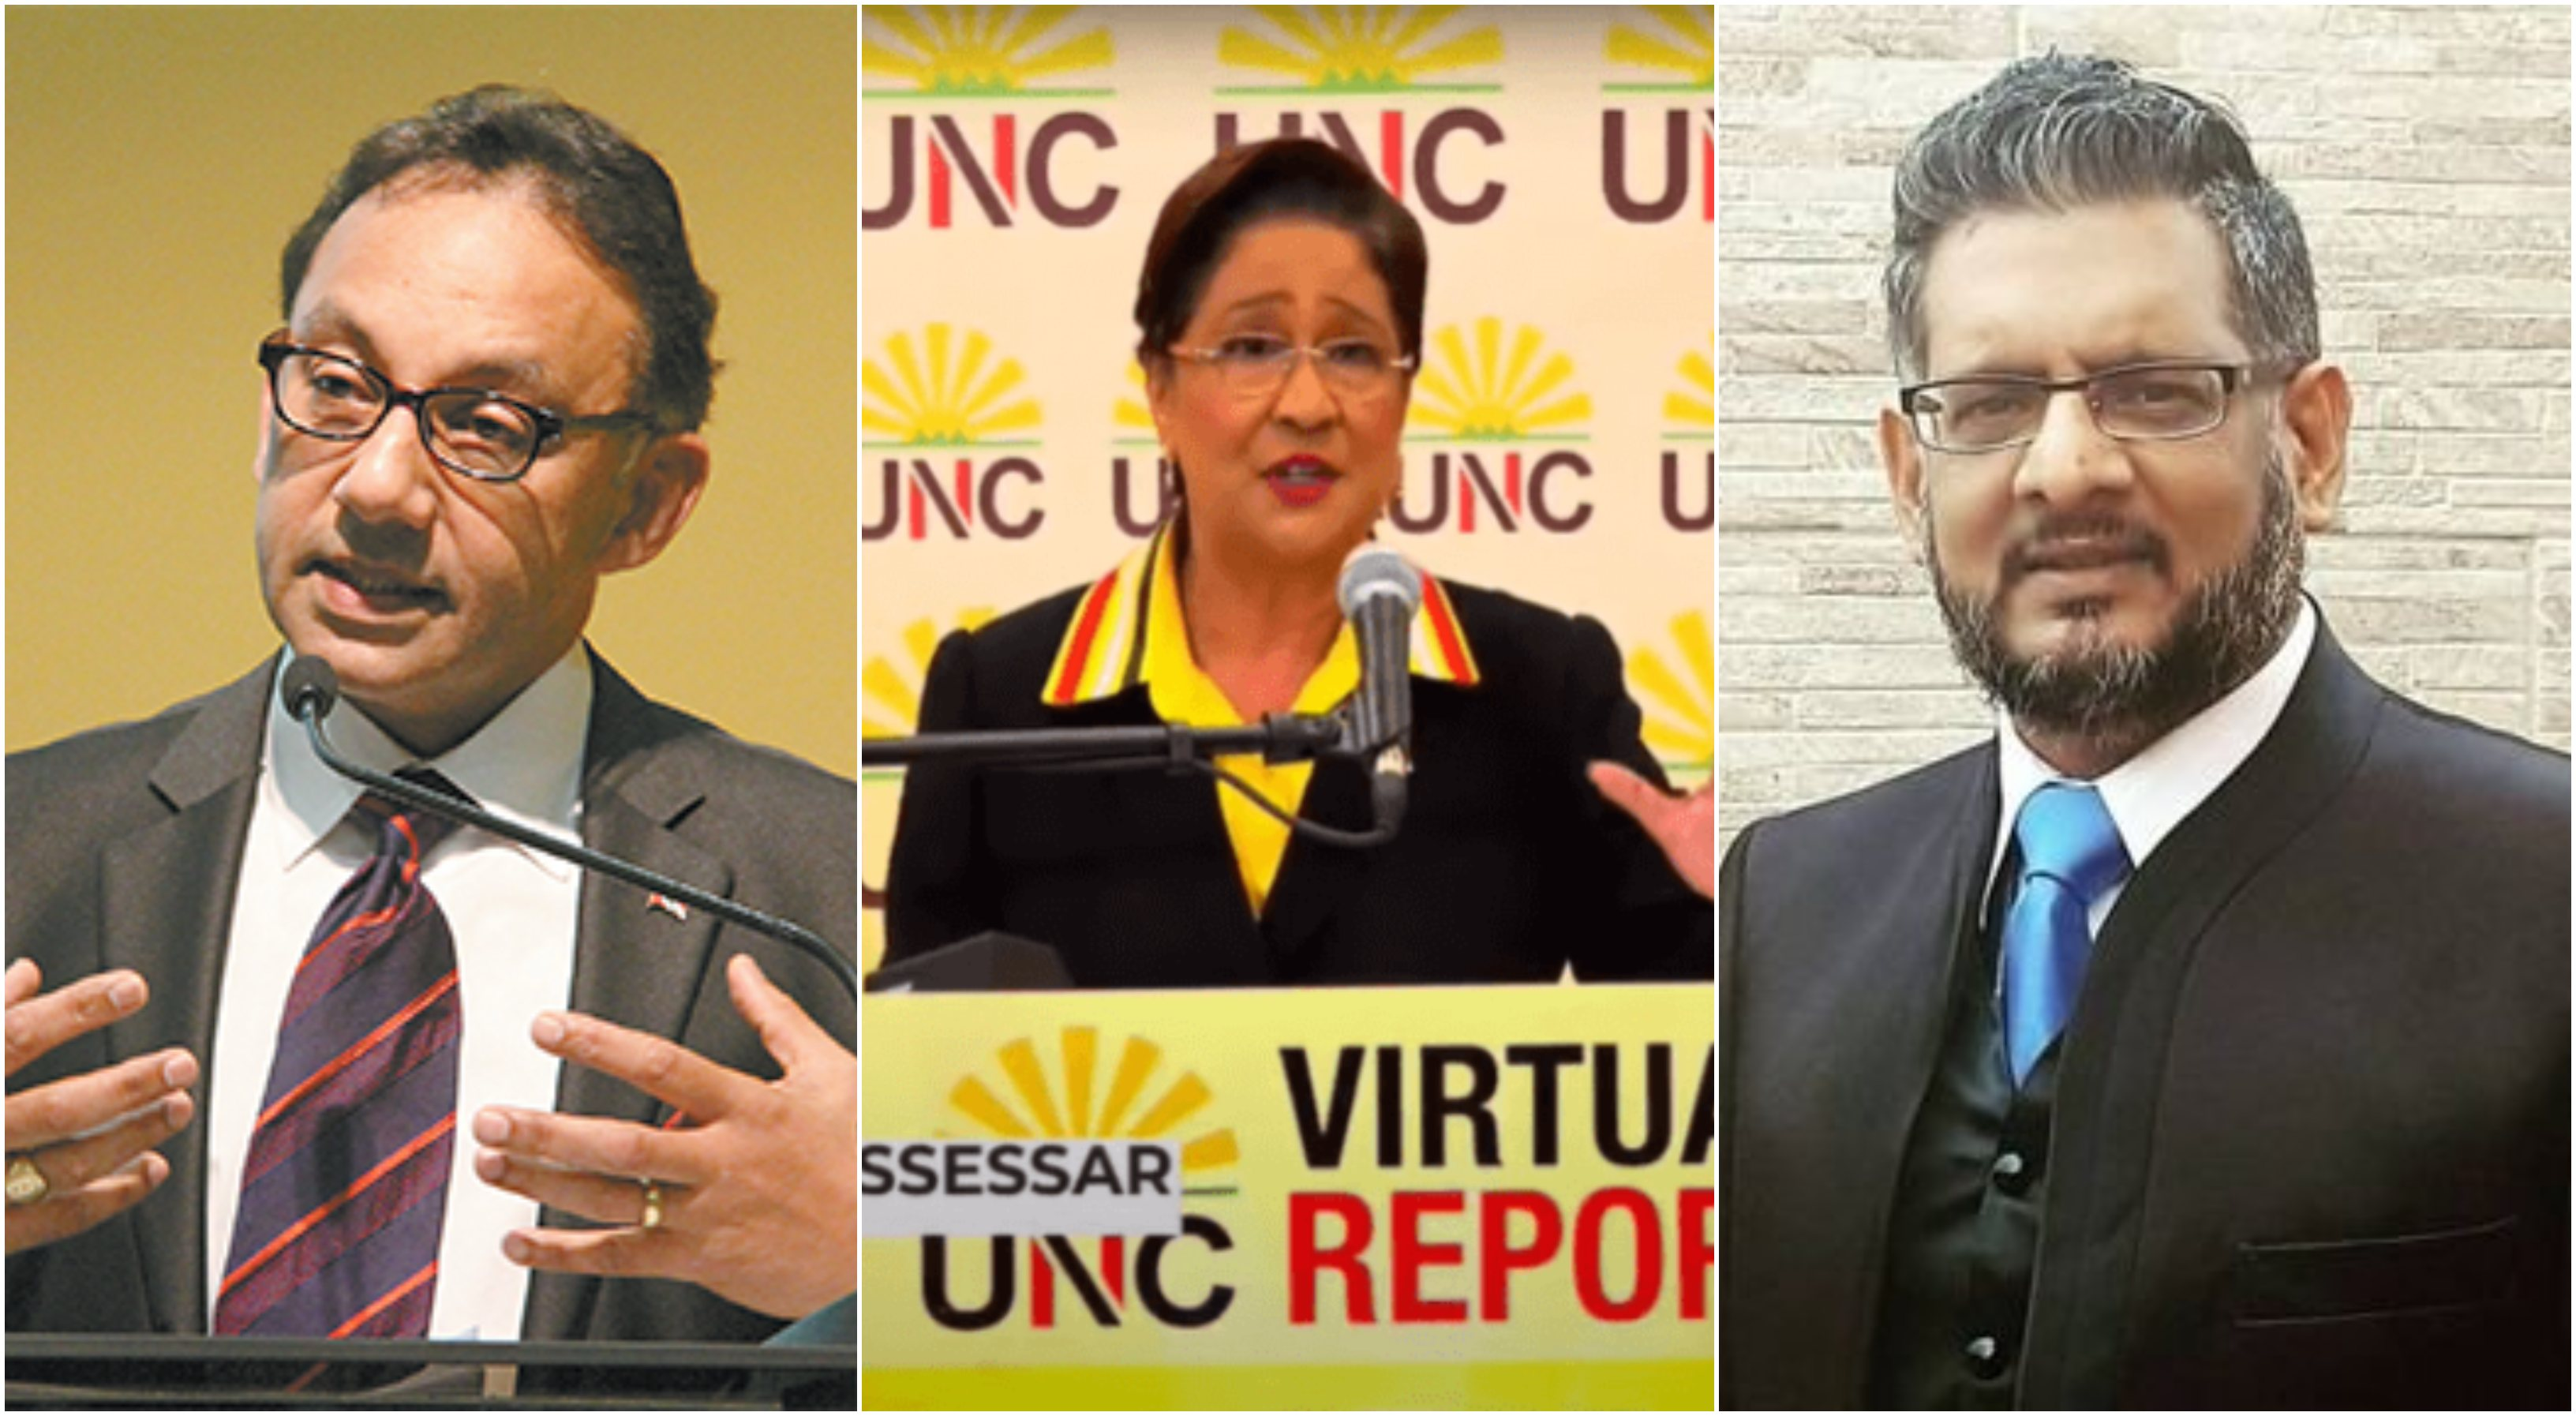 From left: Vasant Bharath, (incumbent) Kamla Persad Bissessar and Devant Maharaj.